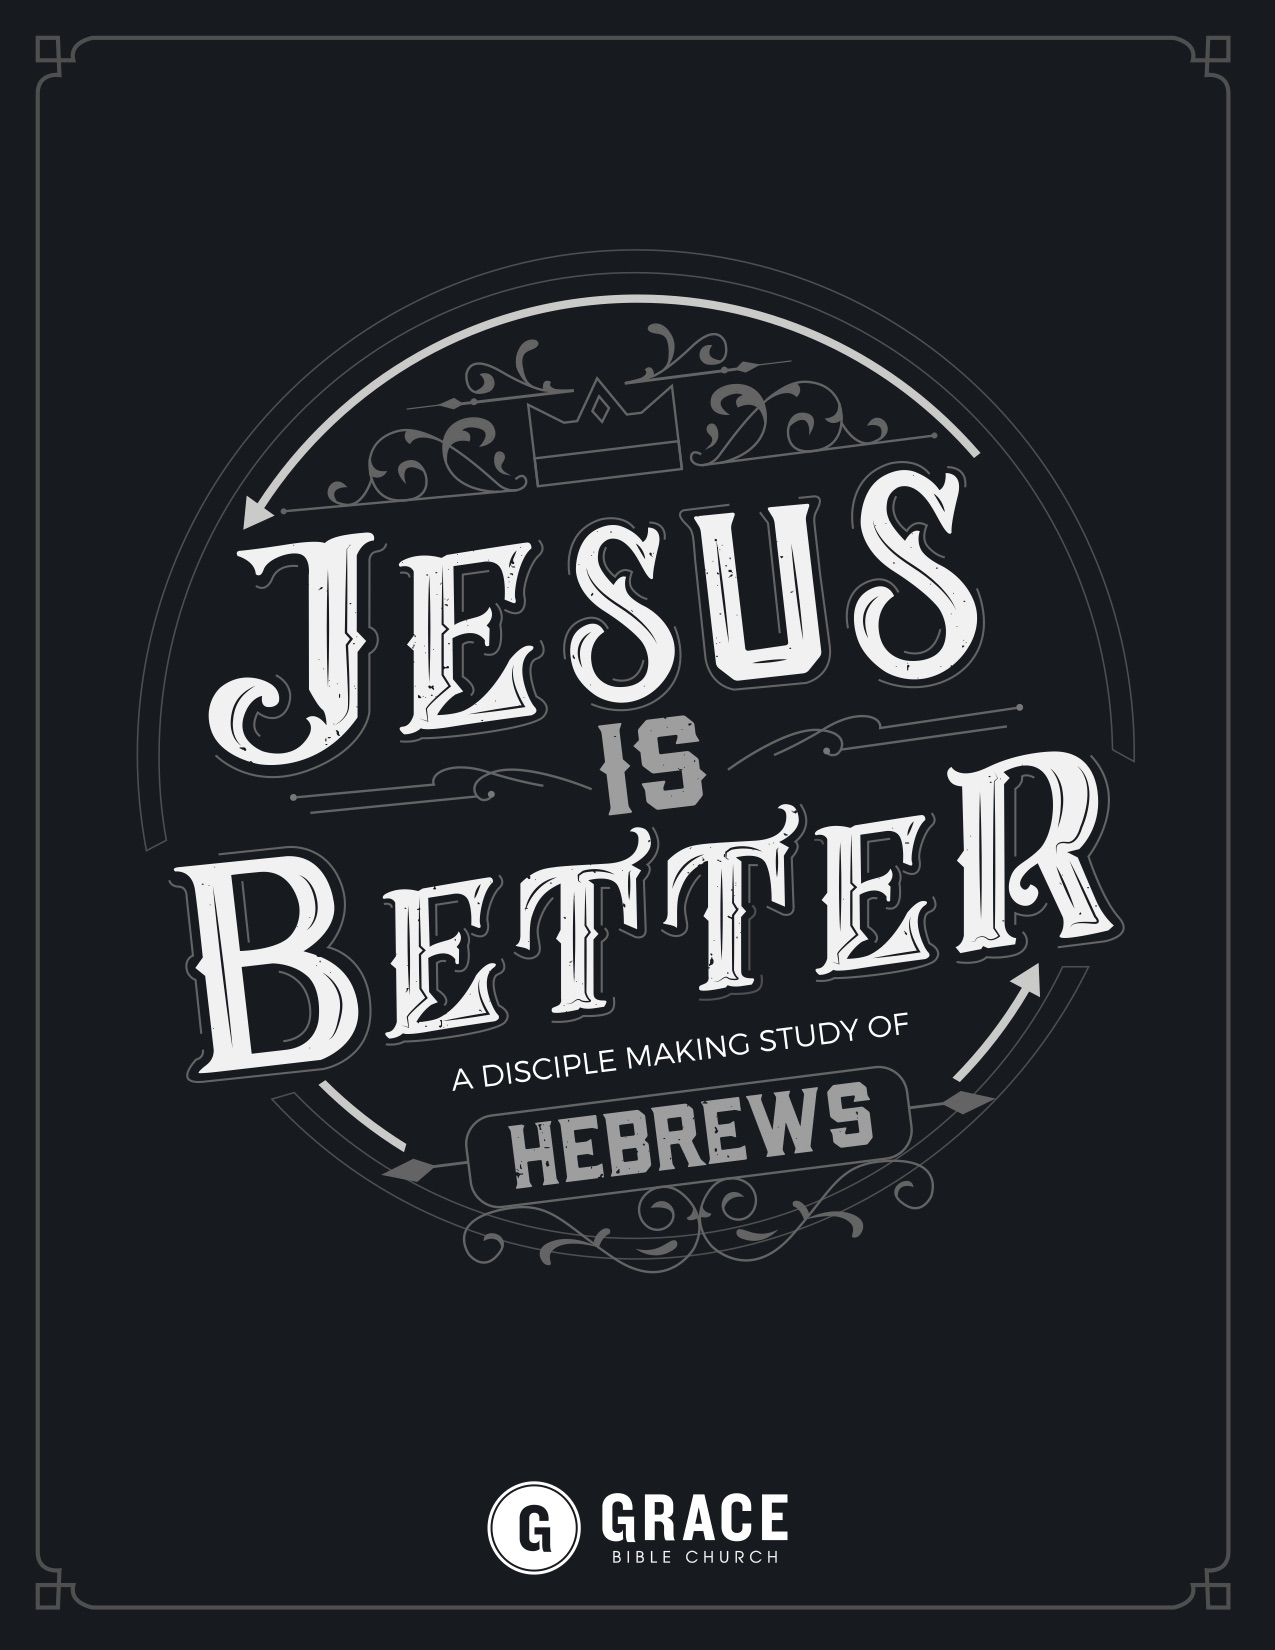 Hebrews 1-6